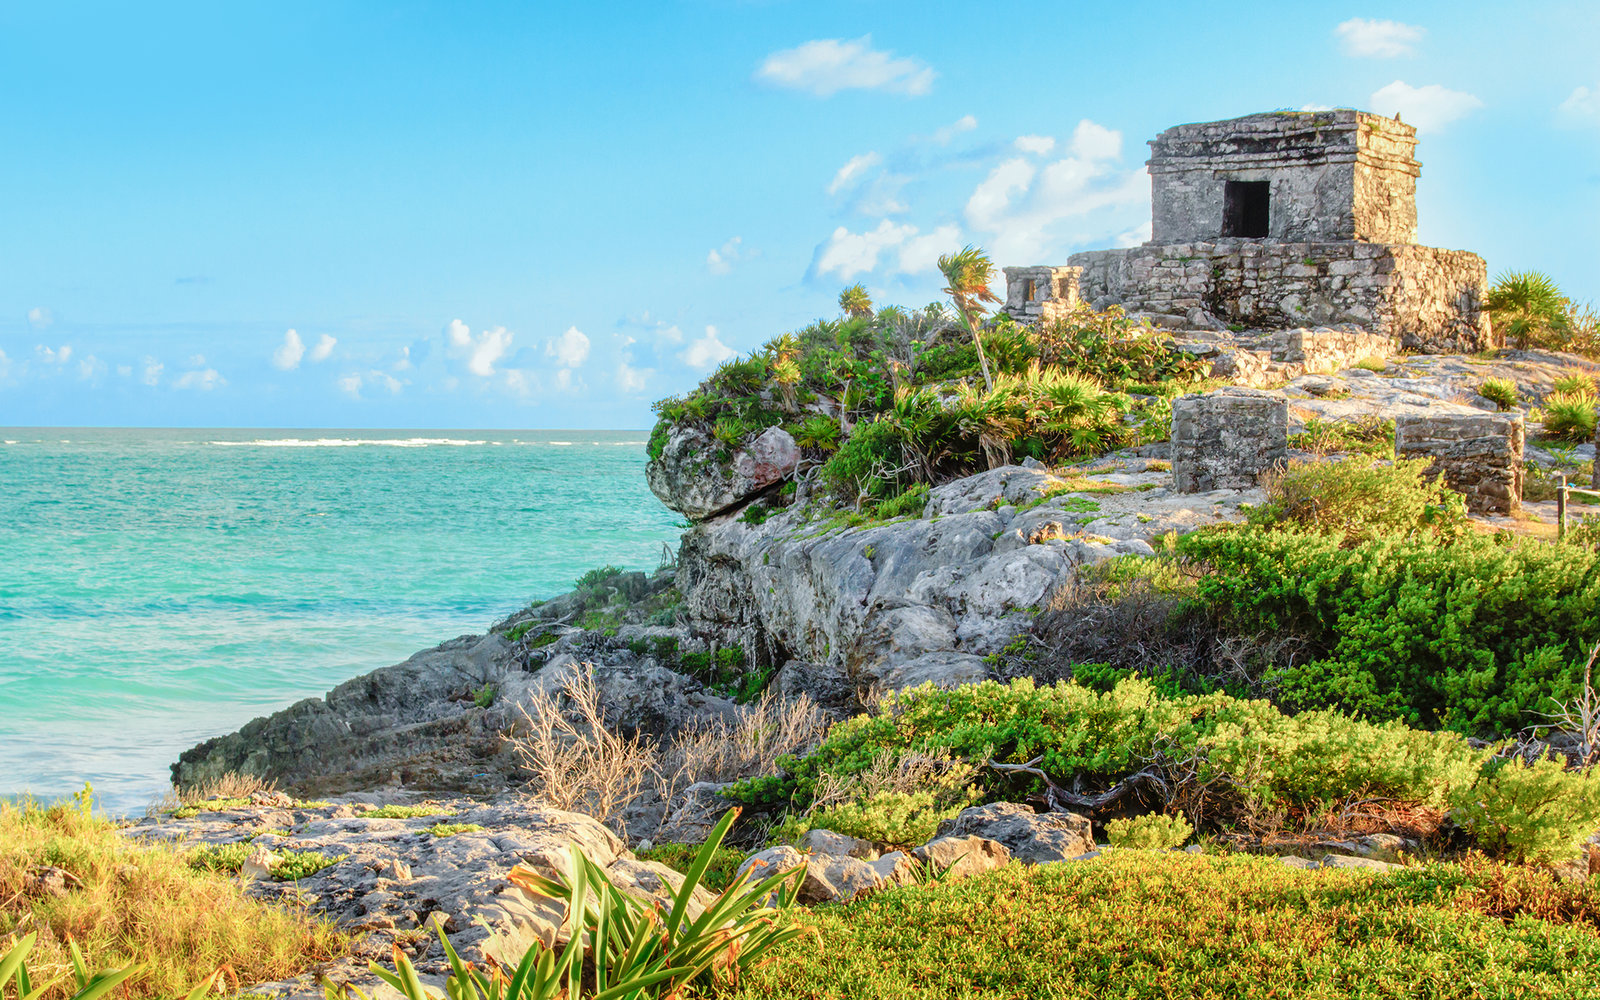 Tulum Archeological Site